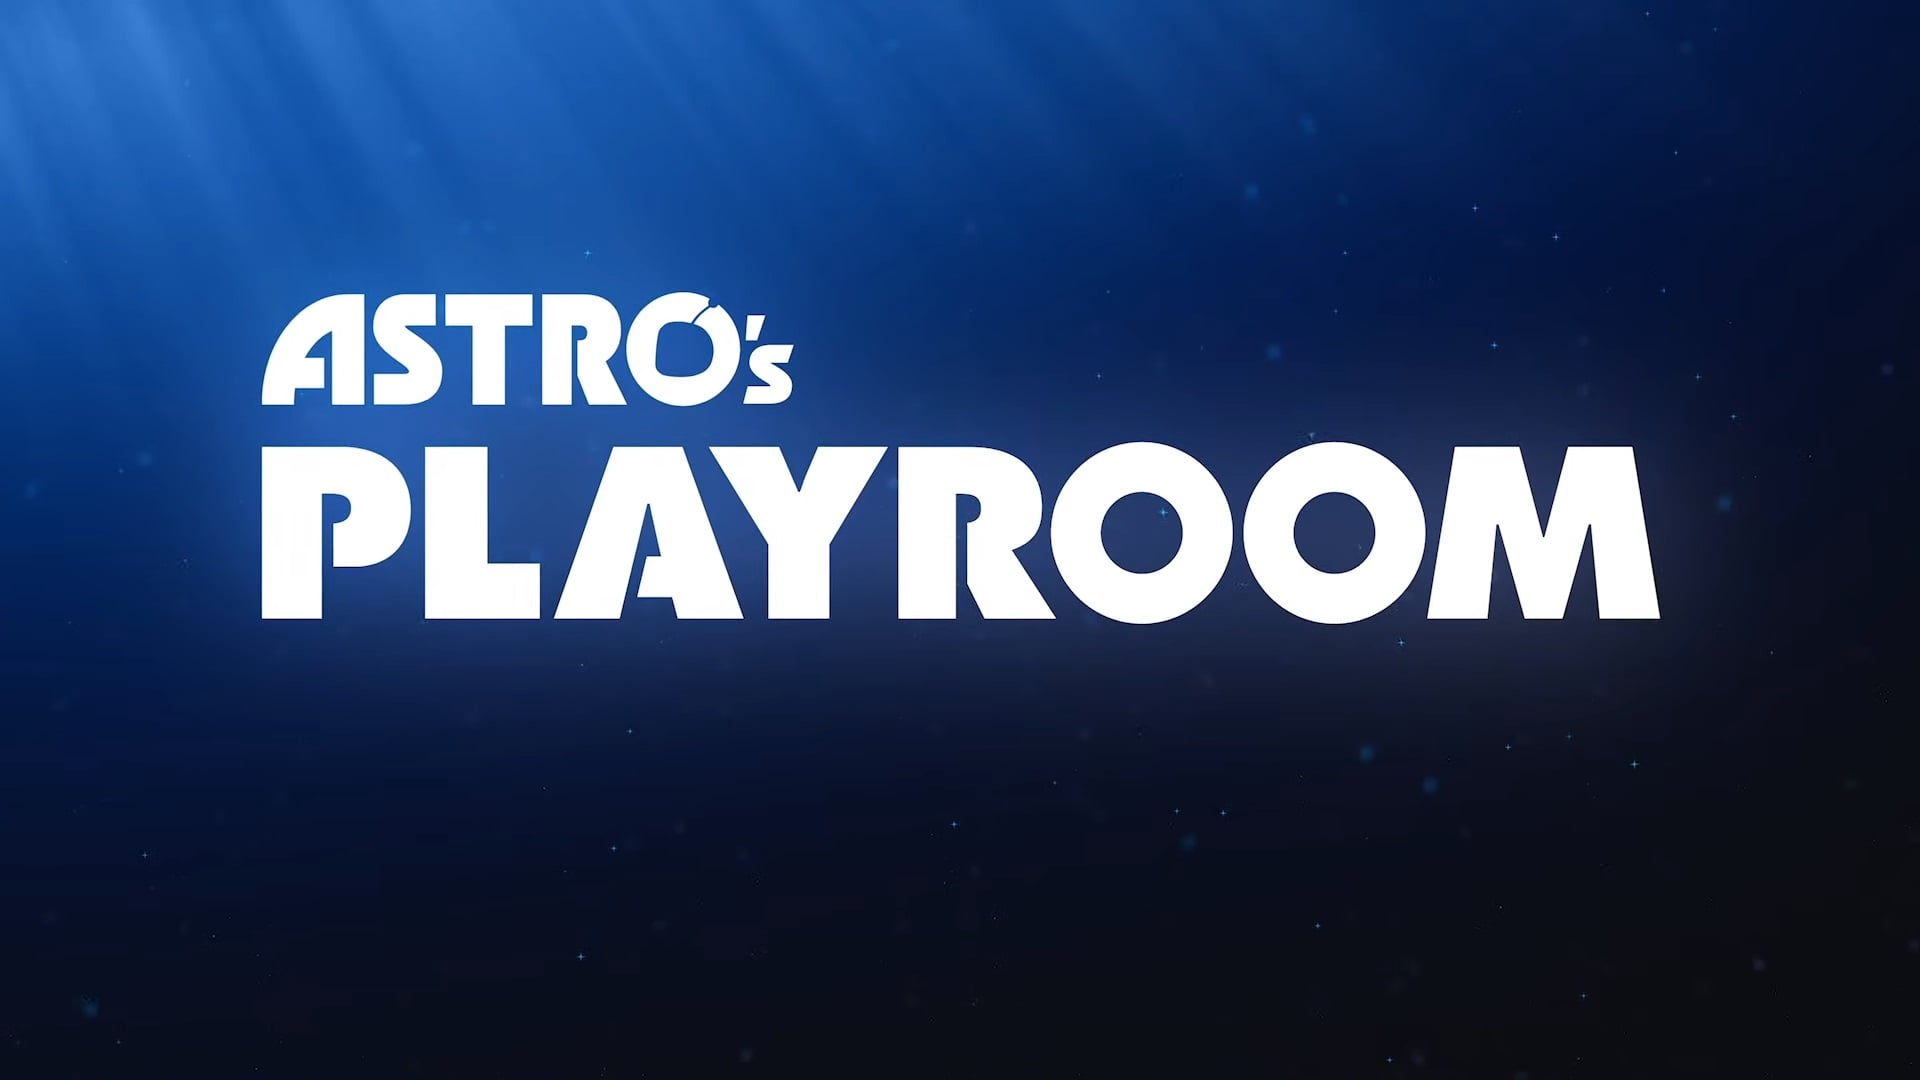 astros playroom logo wallpaper 72209